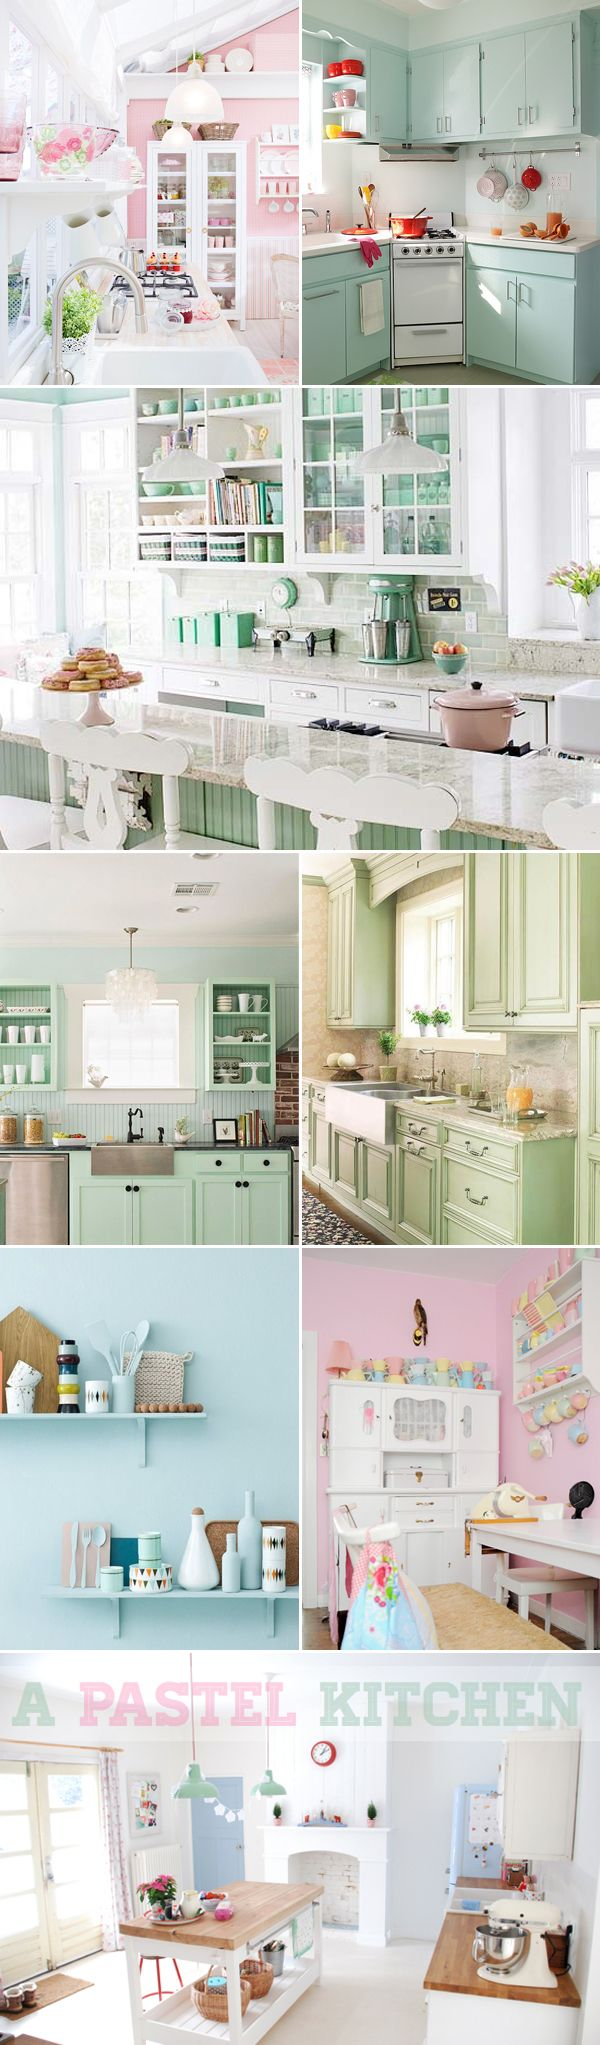 Shabby Chic Kitchen Design 17 Best Ideas About Shabby Chic Kitchen On Pinterest Shabby Chic